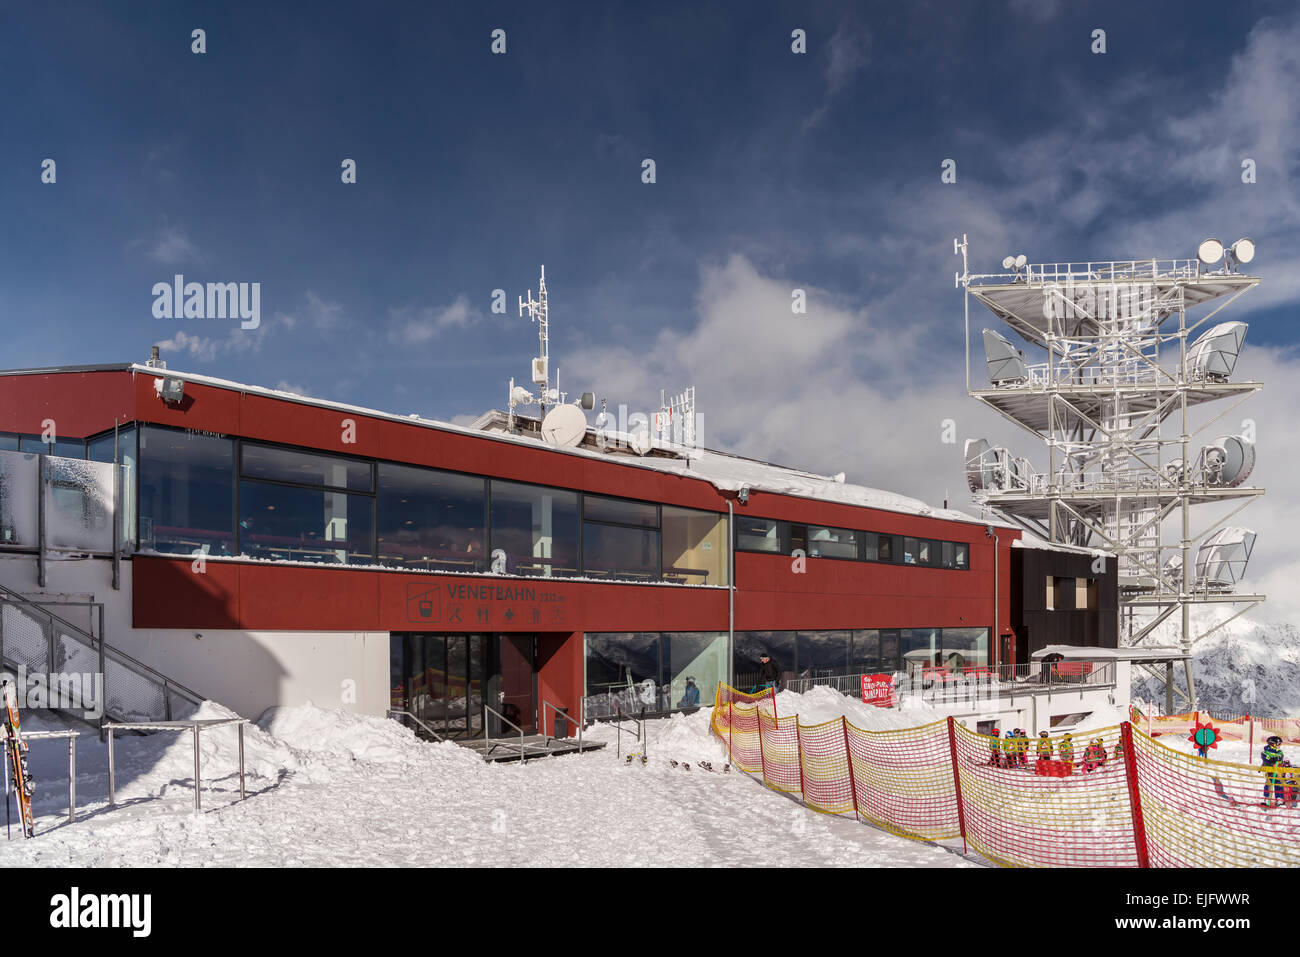 Venetbahn, cable car, mountain station with aerials and a ski nursery, Venet, Zams, Tyrol, Austria - Stock Image